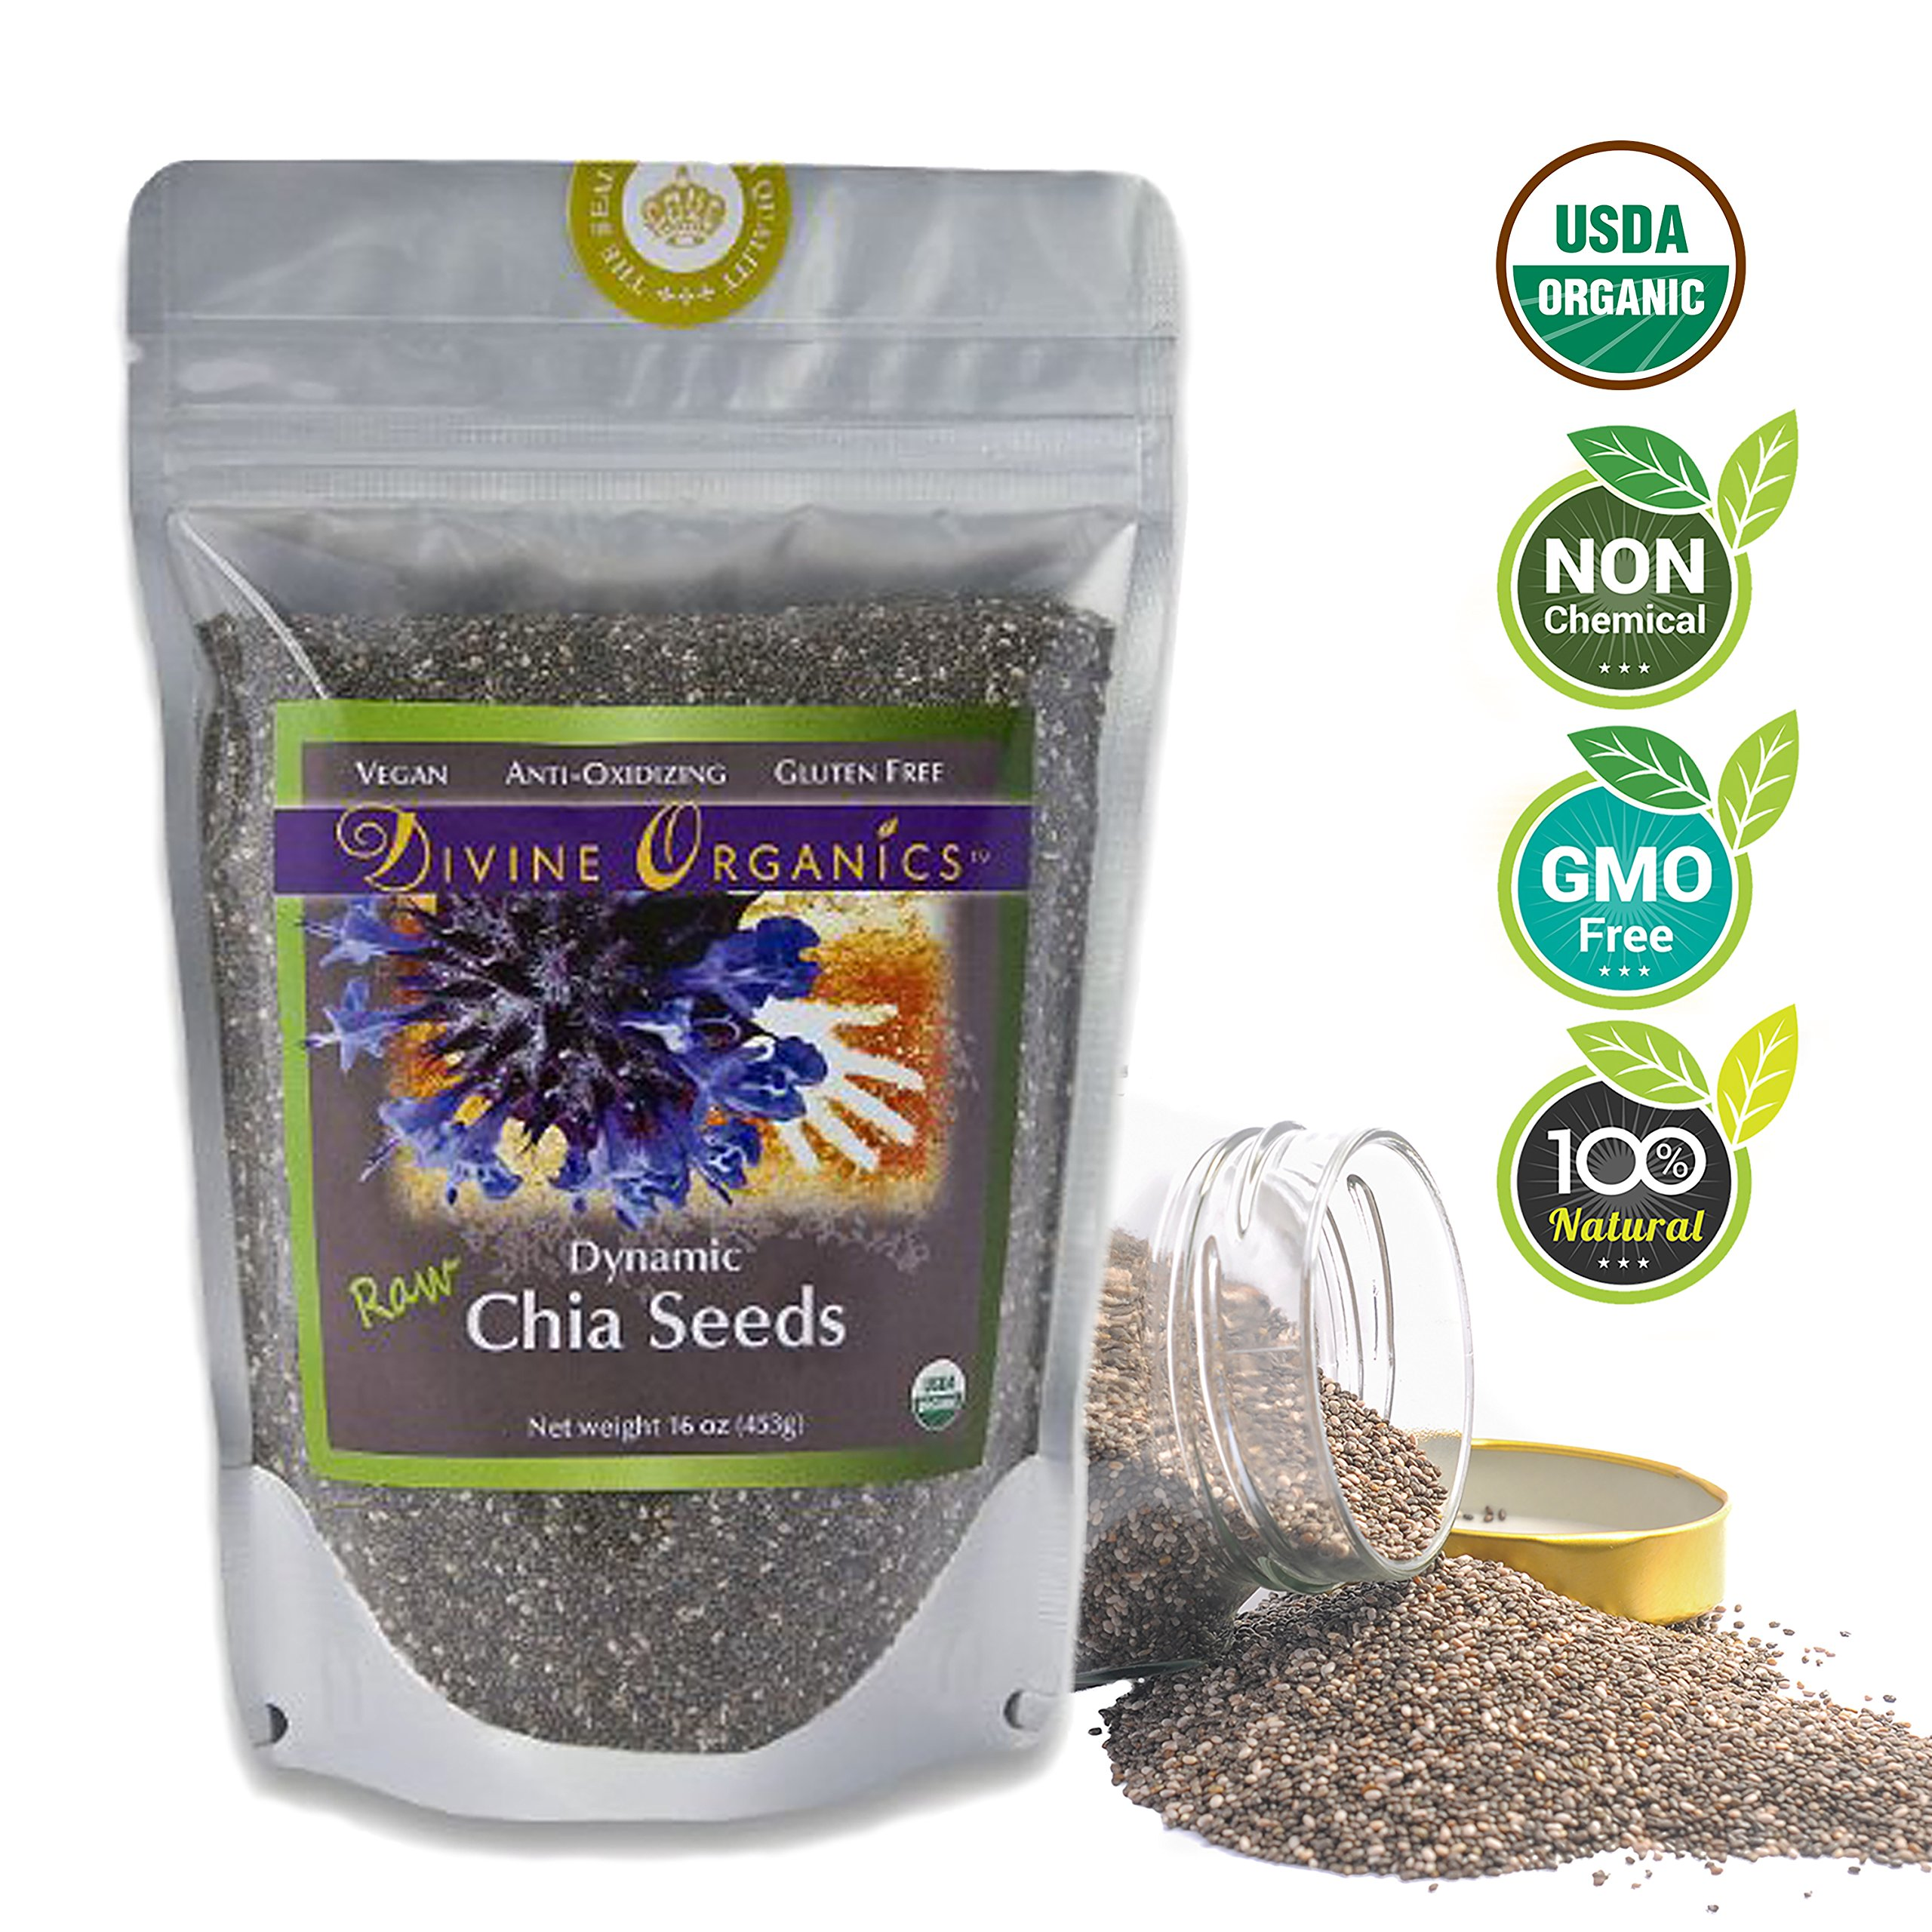 Divine Organics, 16 oz Dynamic Chia Seeds - Certified Organic - Smoothies, Desserts, Salads, Soups - High in Protein, Fiber, Antioxidants